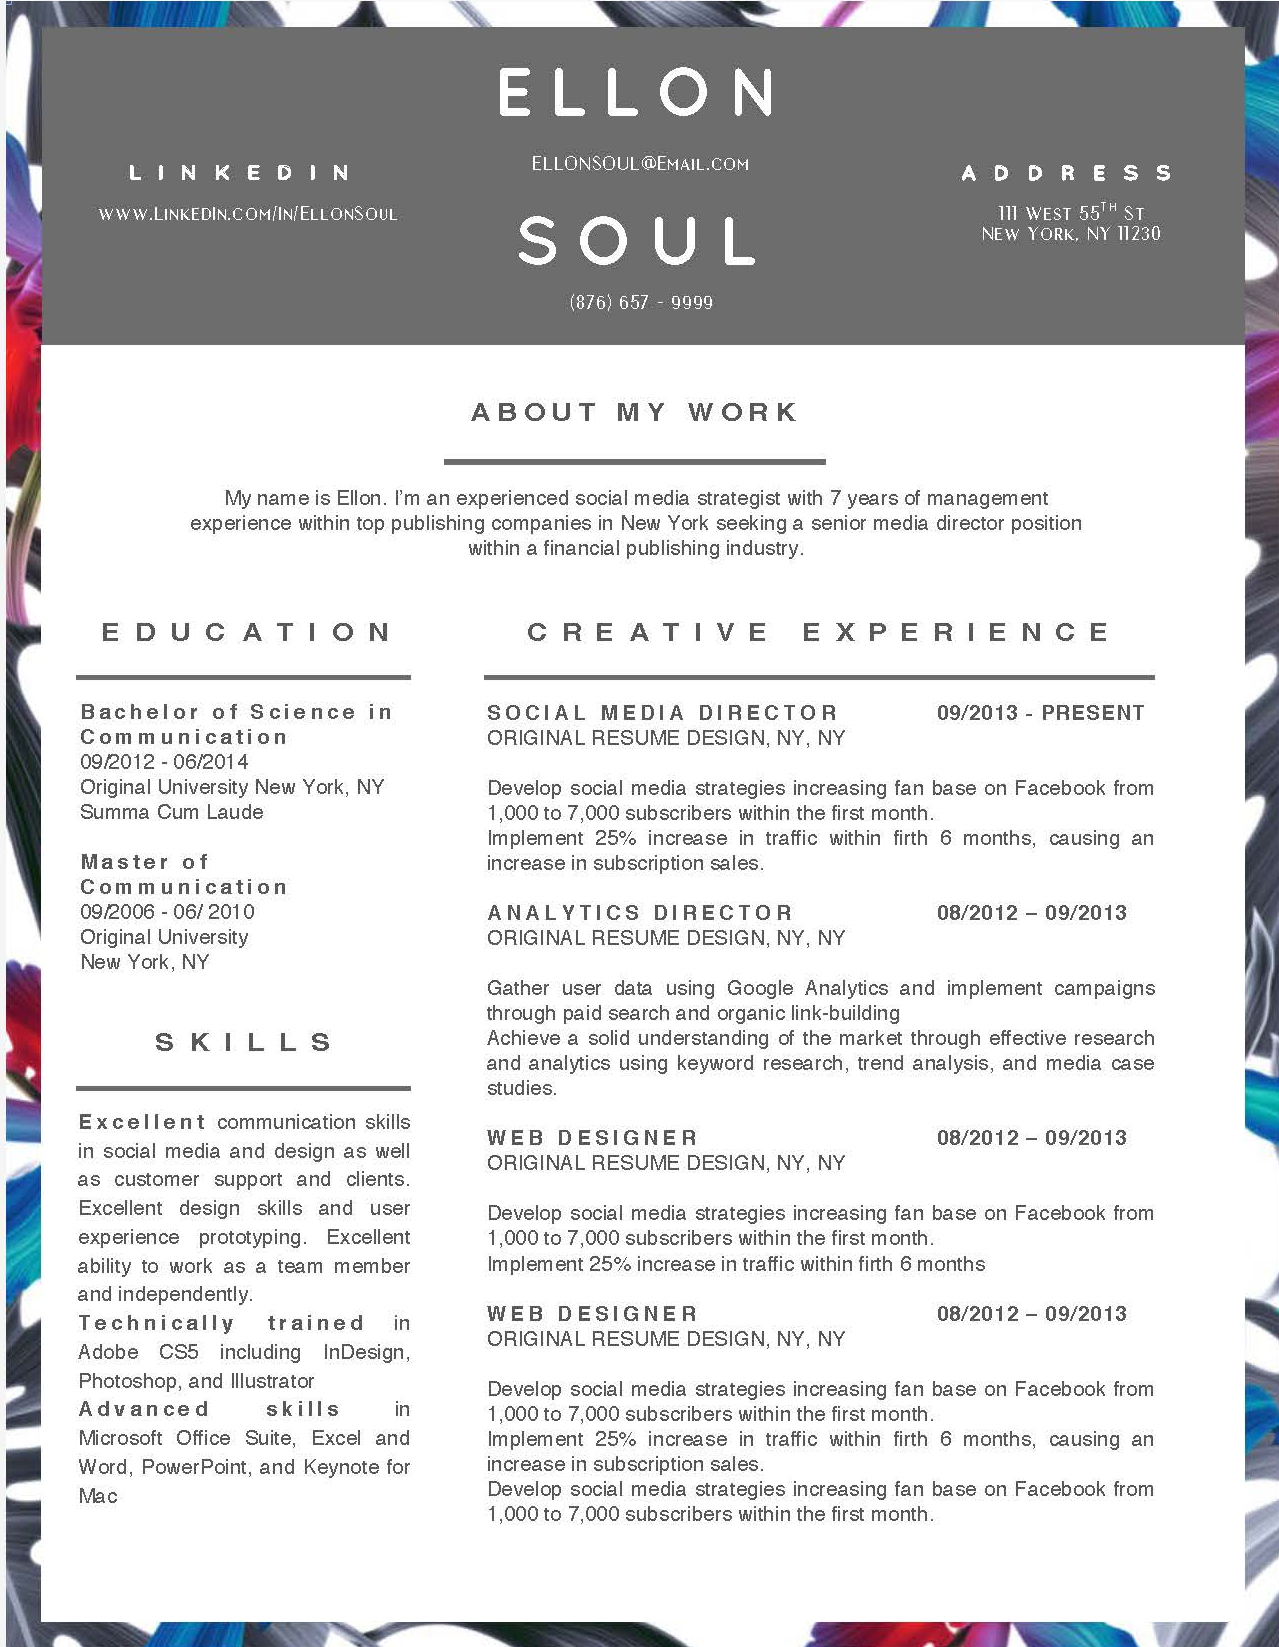 Ellon Soul - Downloadable Resume Template and Cover Letter Template for Microsoft Word and Apple Pages